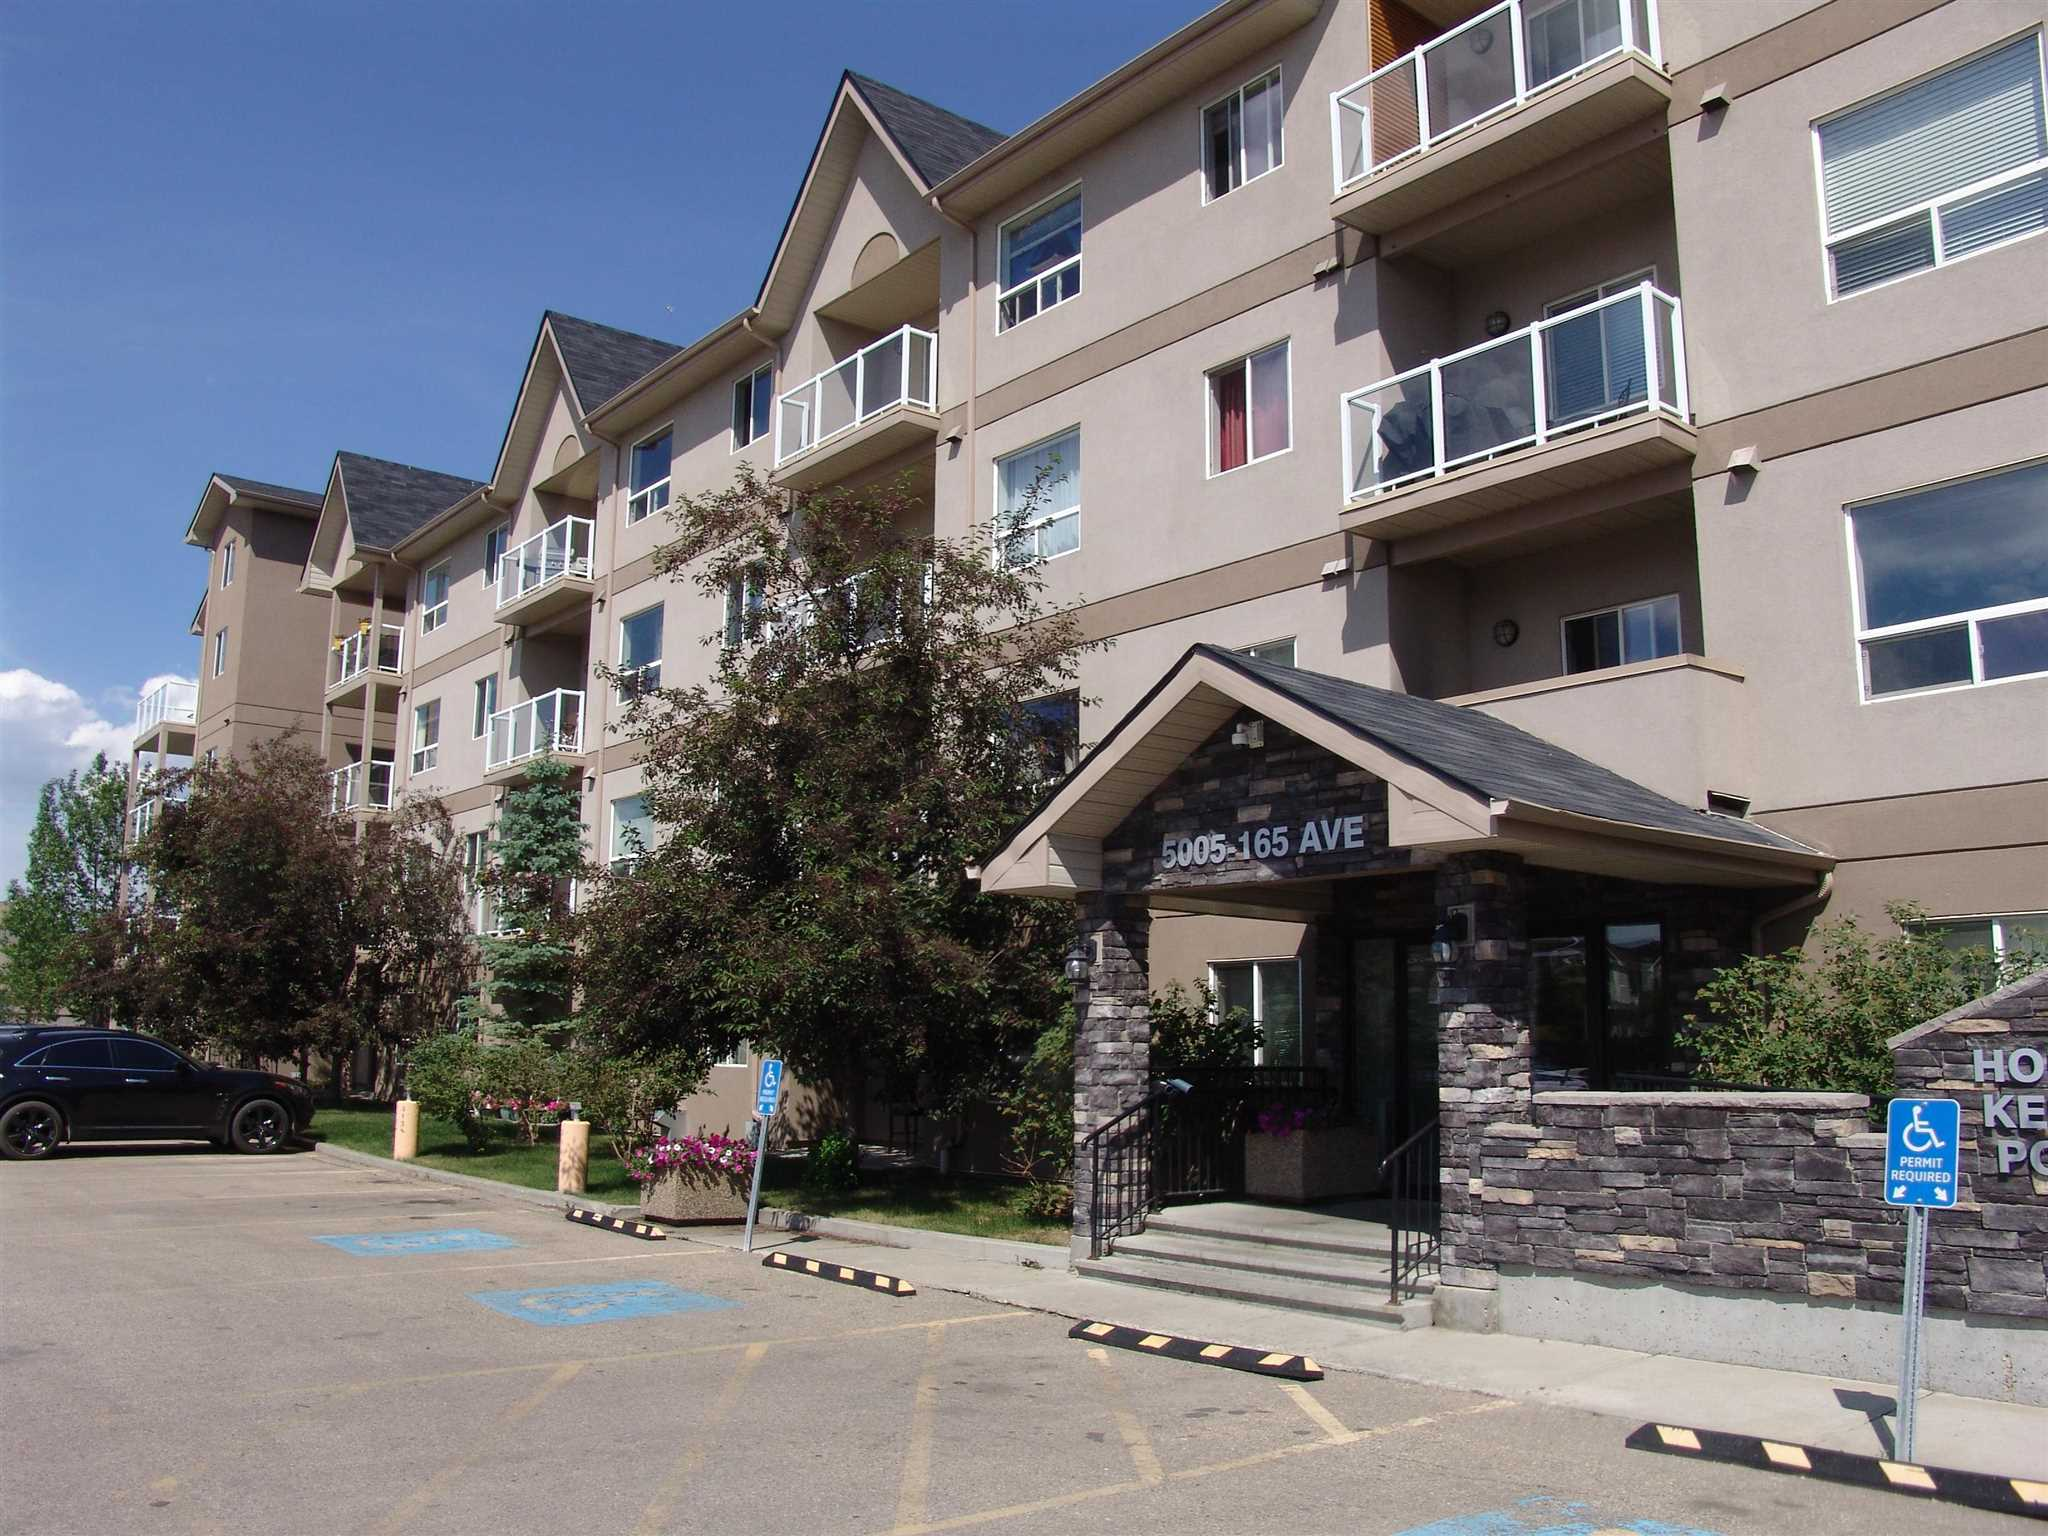 Beautiful & well-maintained apartment condo located in the well sought-after community of Hollick-Kenyon. This large, over 973 sq.ft. CORNER UNIT condo, with windows on 2 sides, features a great open floor plan, kitchen with loads of cupboard space & newer upgraded stainless steel appliances, gorgeous laminate flooring, a SEPARATE DINING area, large living room and insuite laundry with newer washer and dryer. Highly desirable corner unit with tons of natural sunlight!! 2 spacious bedrooms with the master having a large walk-in closet and 4-piece en-suite. As well, there is a 4-piece guest bath. Amenities include an exercise/weight room. Great location with schools, PARKS WITH WATER SPRAY & ICE RINKS, shopping, amenities and transit & HIGHWAYS. A great place to call home!!